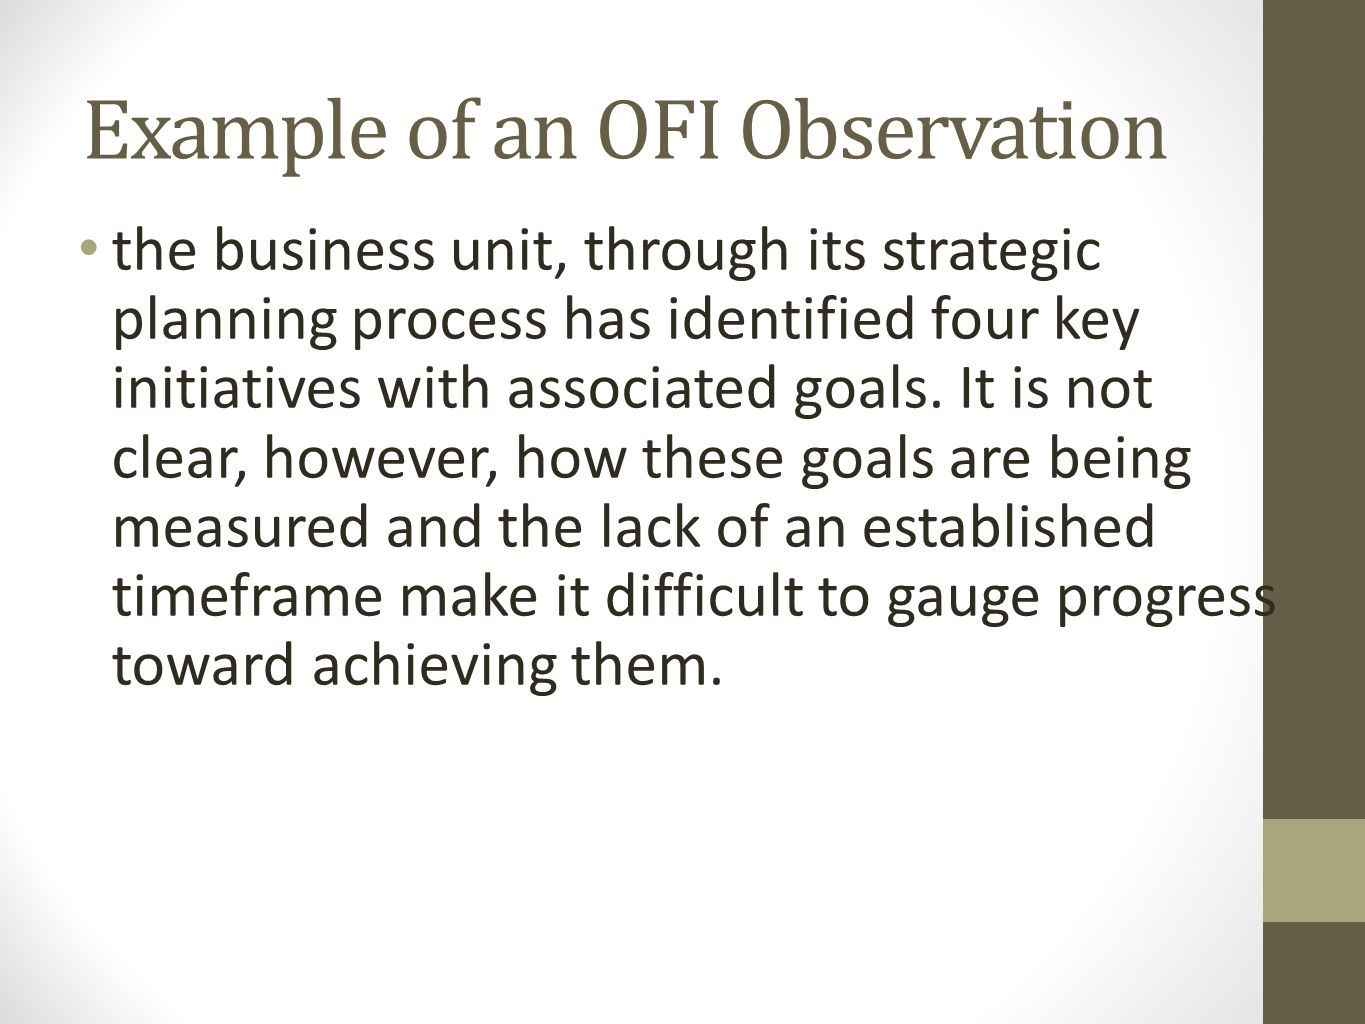 Example of an OFI Observation the business unit, through its strategic planning process has identified four key initiatives with associated goals.